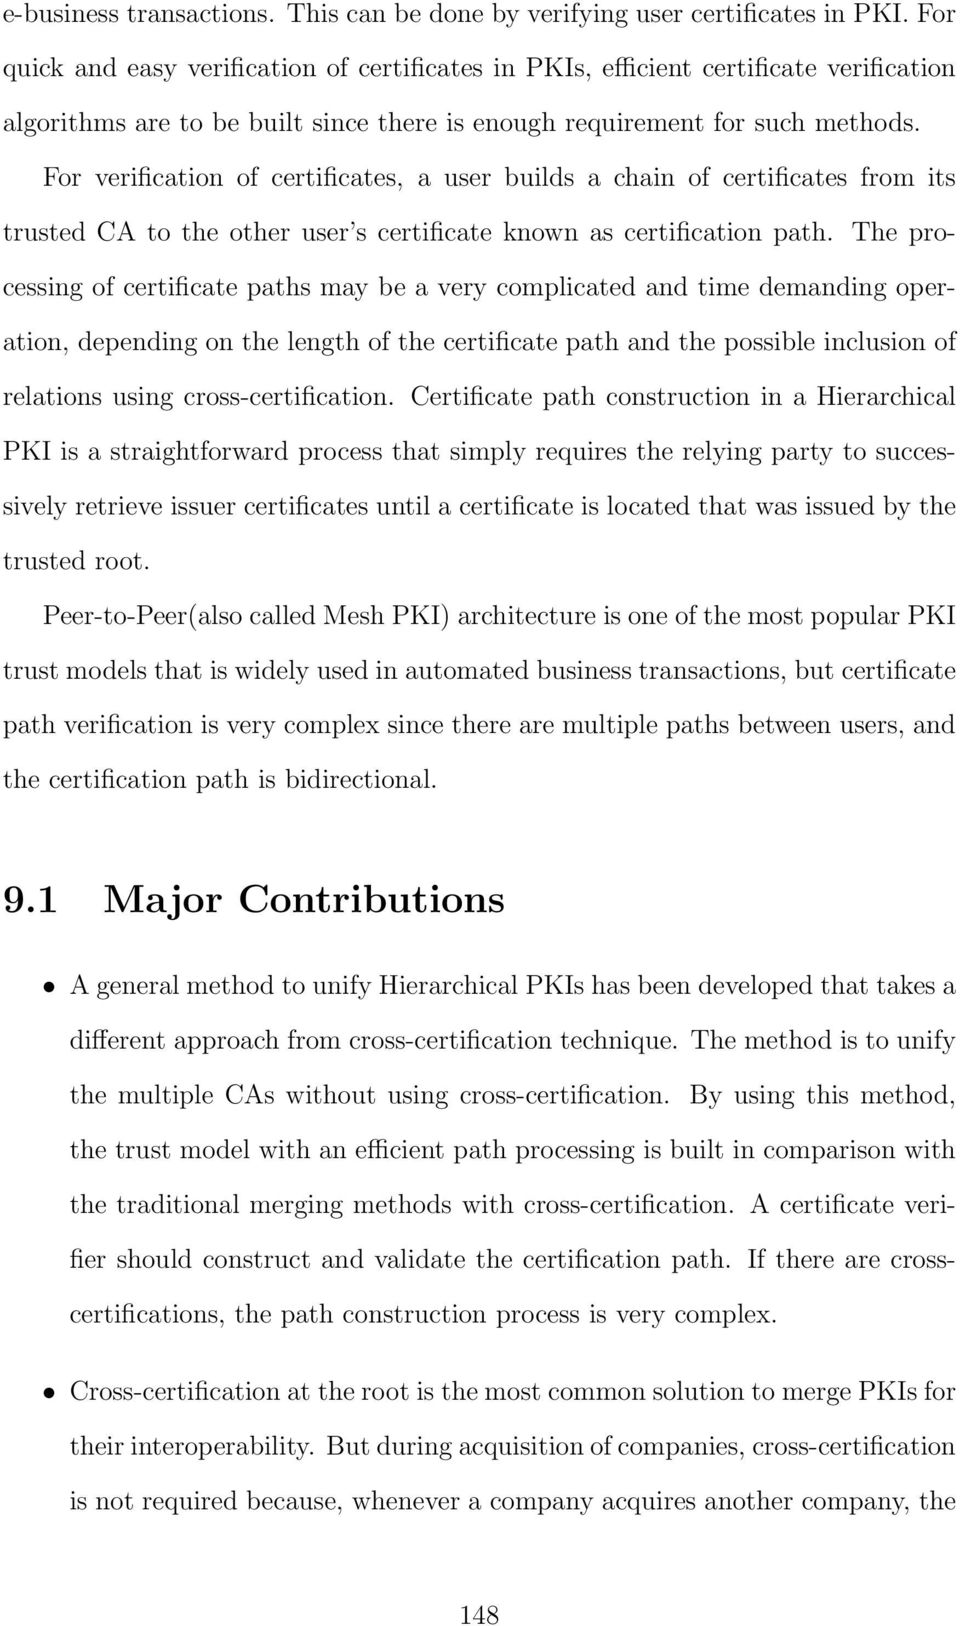 For verification of certificates, a user builds a chain of certificates from its trusted CA to the other user s certificate known as certification path.